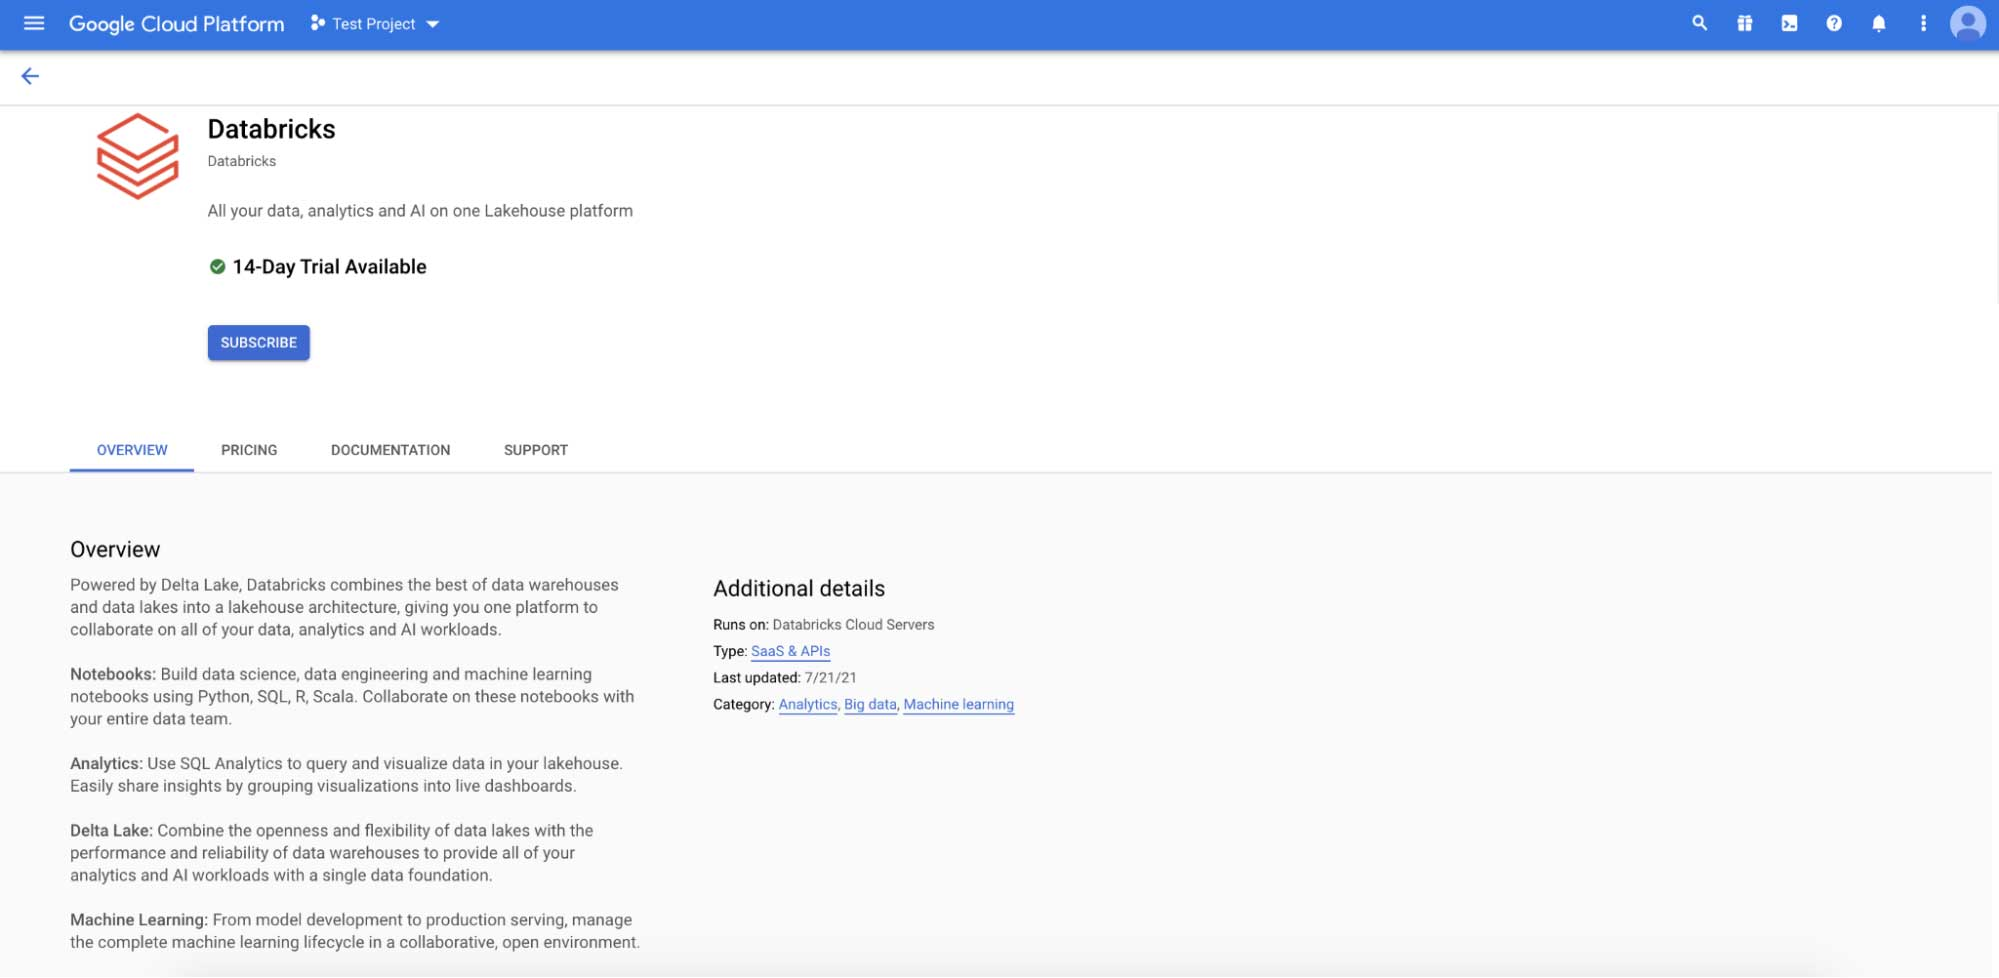 Databricks listing in the Google Cloud Marketplace. You are now ready to subscribe.